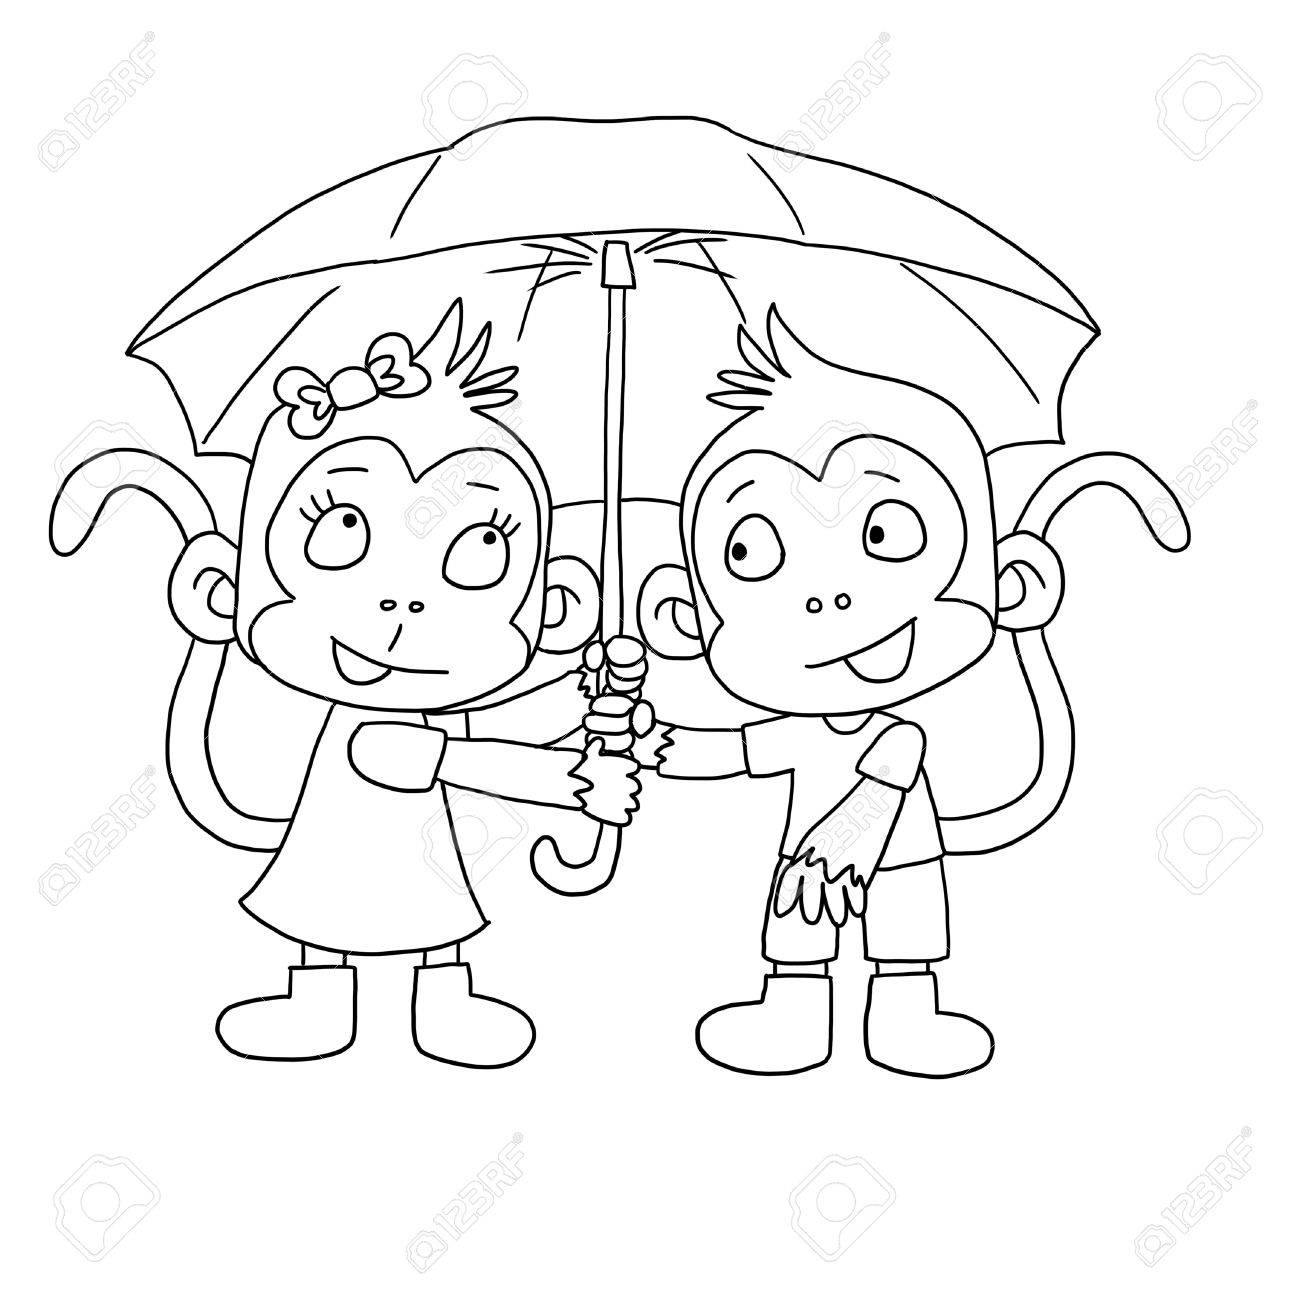 Cute monkeys hiding under an umbrella - coloring page